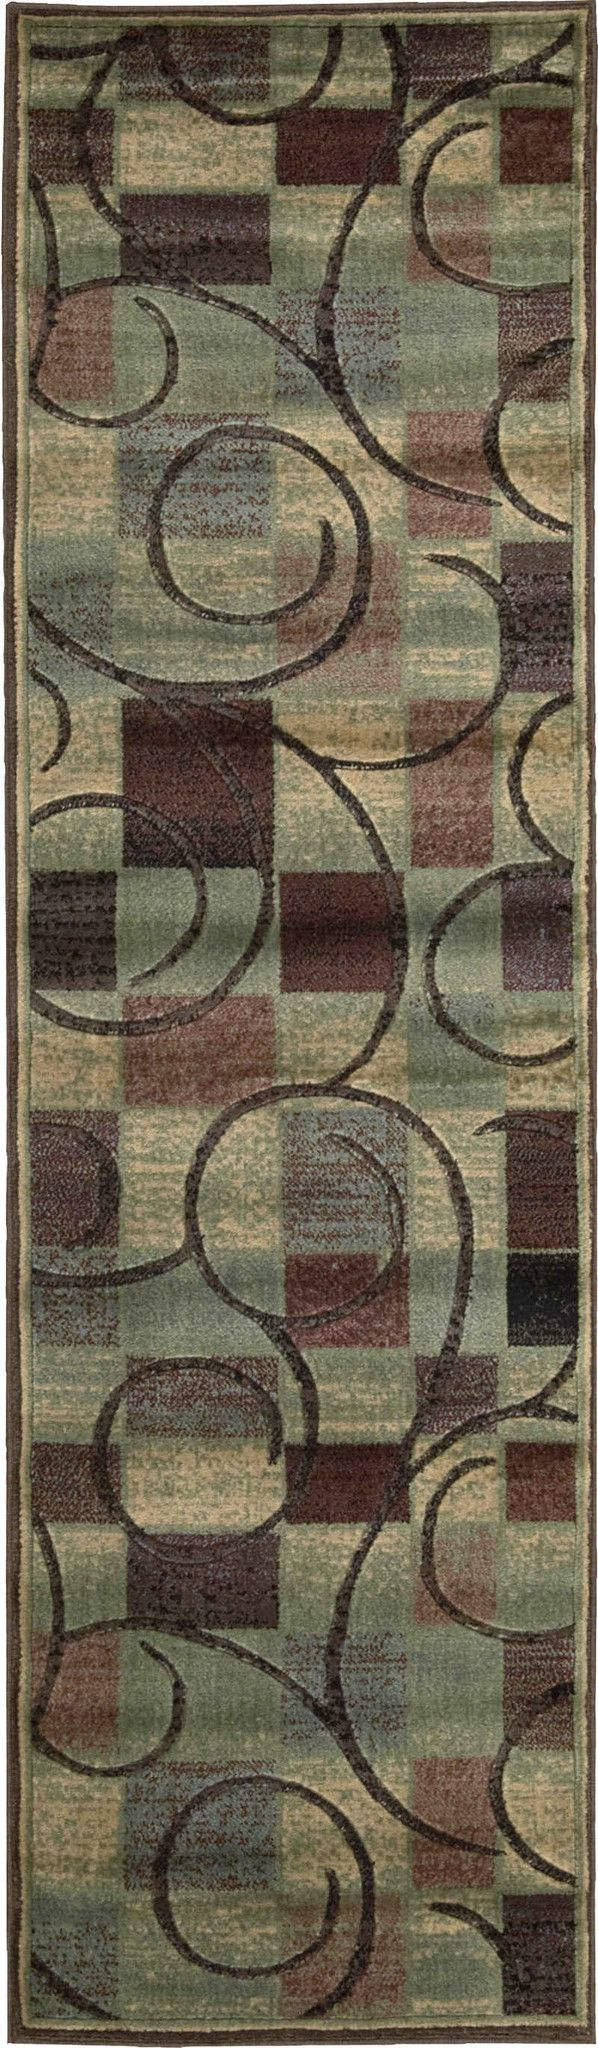 Nourison Rugs Expressions XP01 Brown